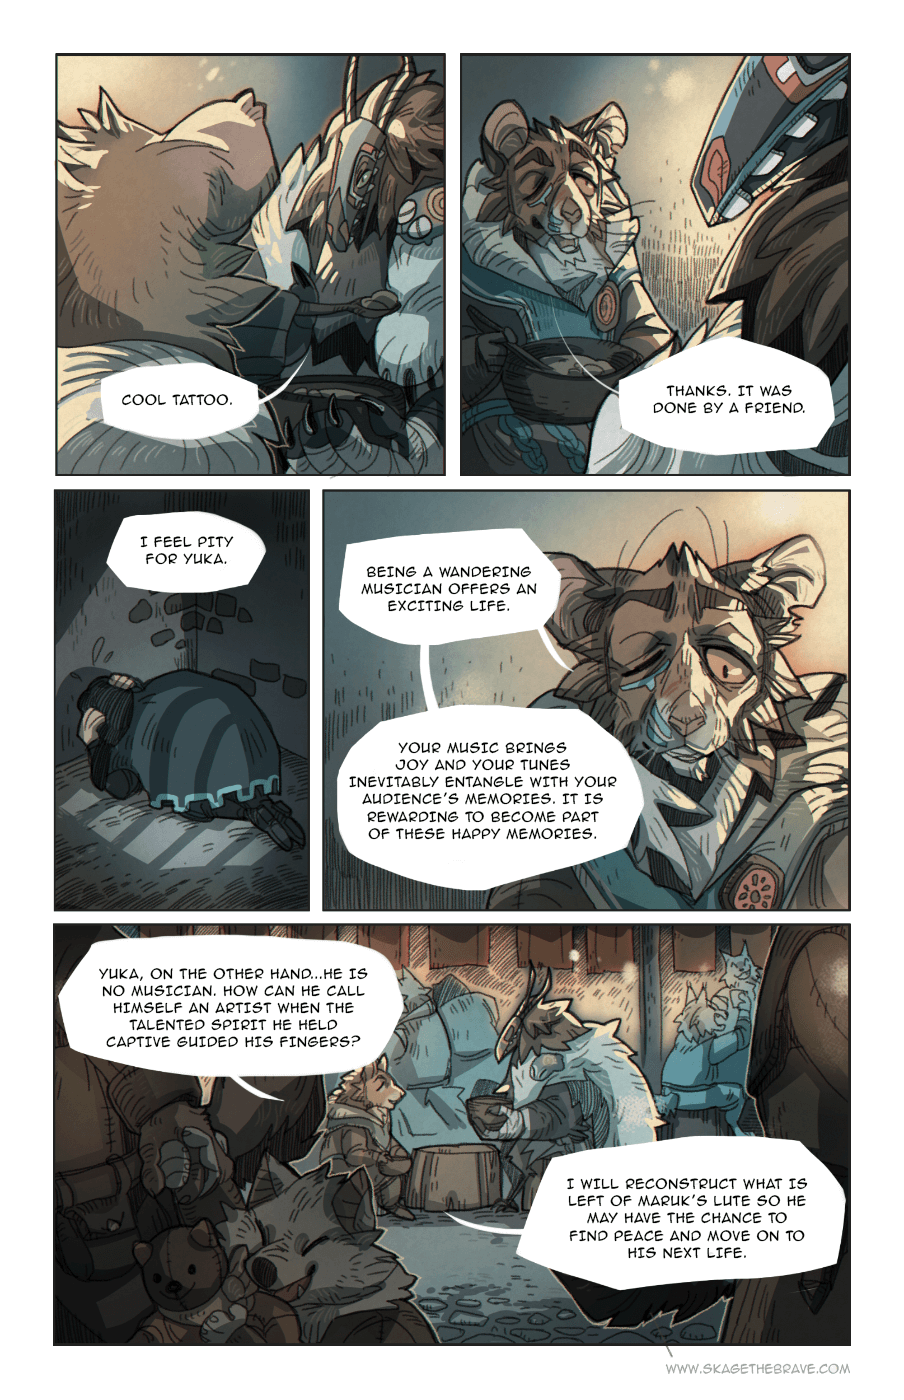 Chapter II, page 26